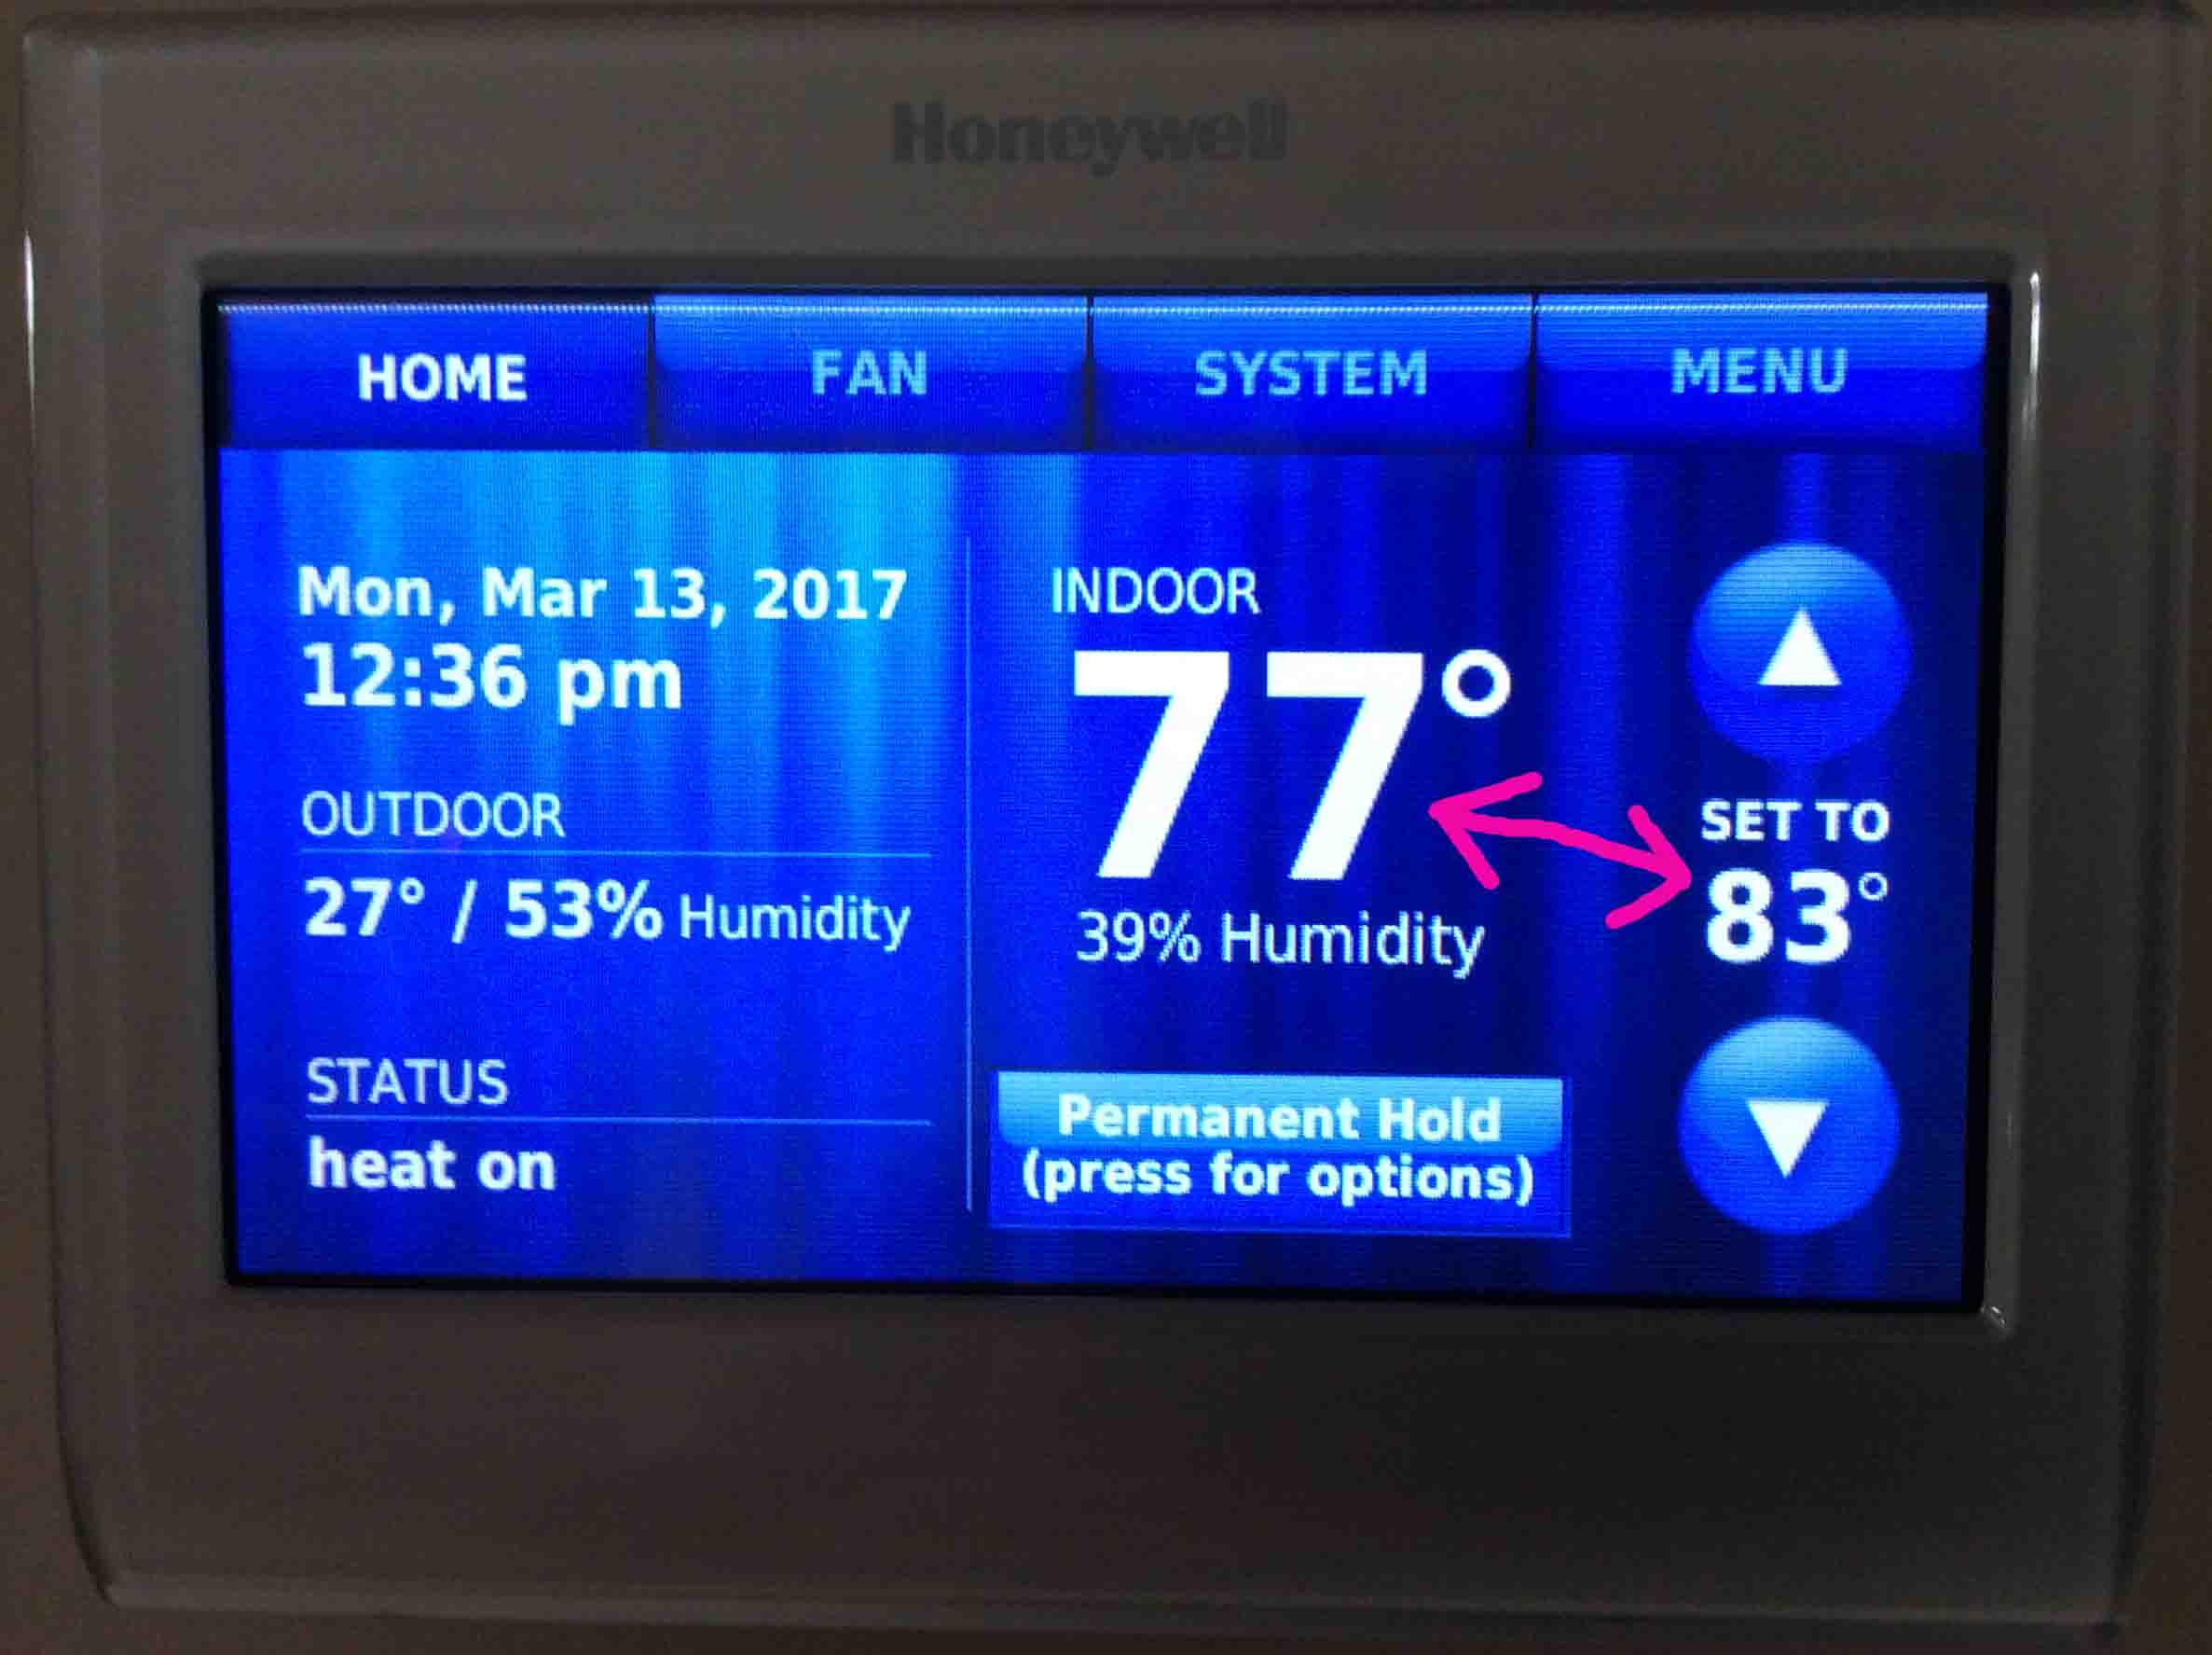 Honeywell Heat Pump Troubleshooting Various Owner Manual Guide Thermostat Not Reaching Set Temperature Rh Tomstek Us Wi Fi For